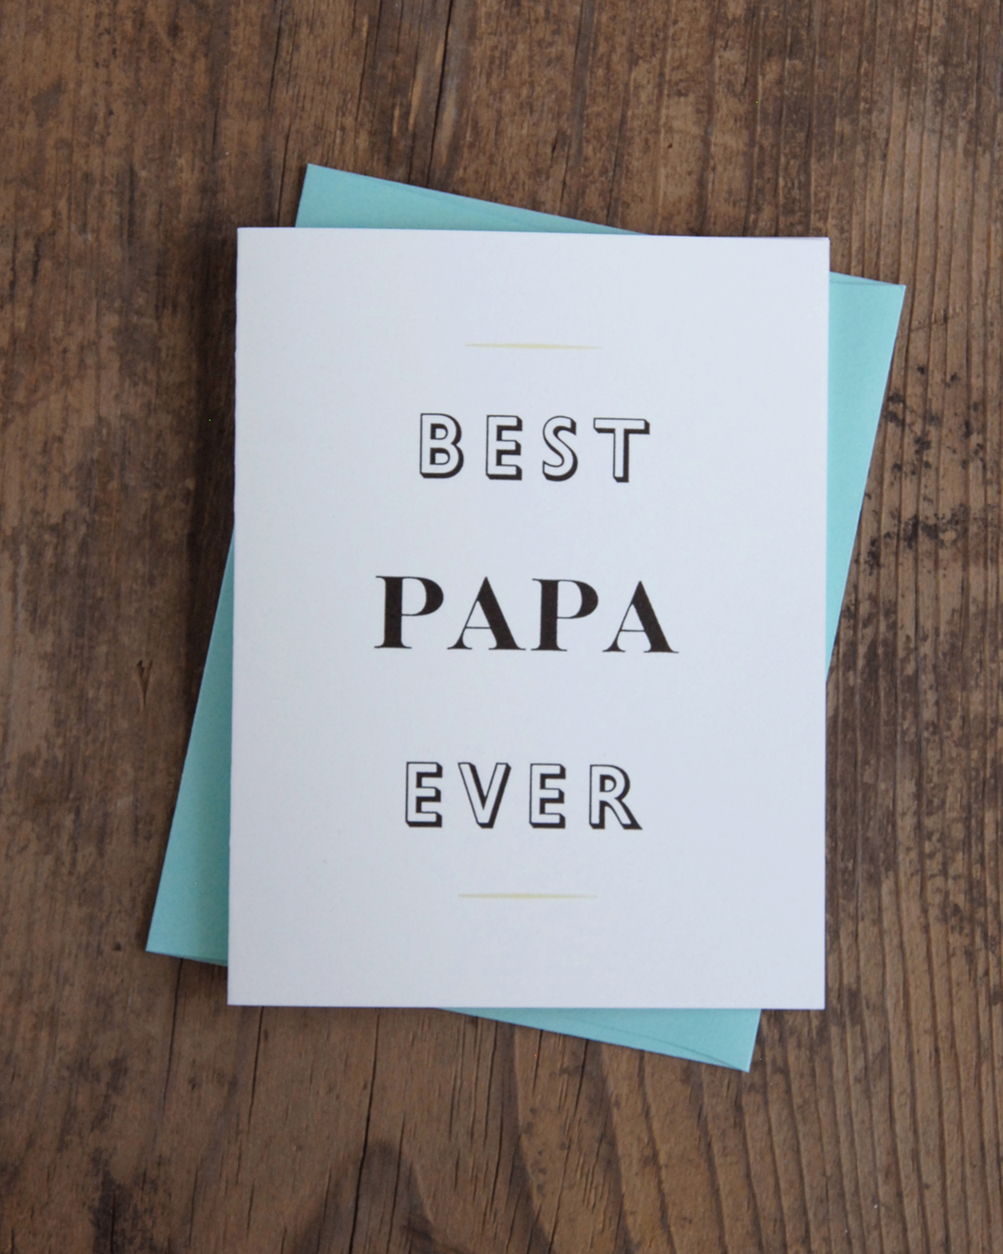 Best papa ever letterpress greeting card iron leaf press home greeting cards mom dad best papa ever letterpress greeting card kristyandbryce Choice Image